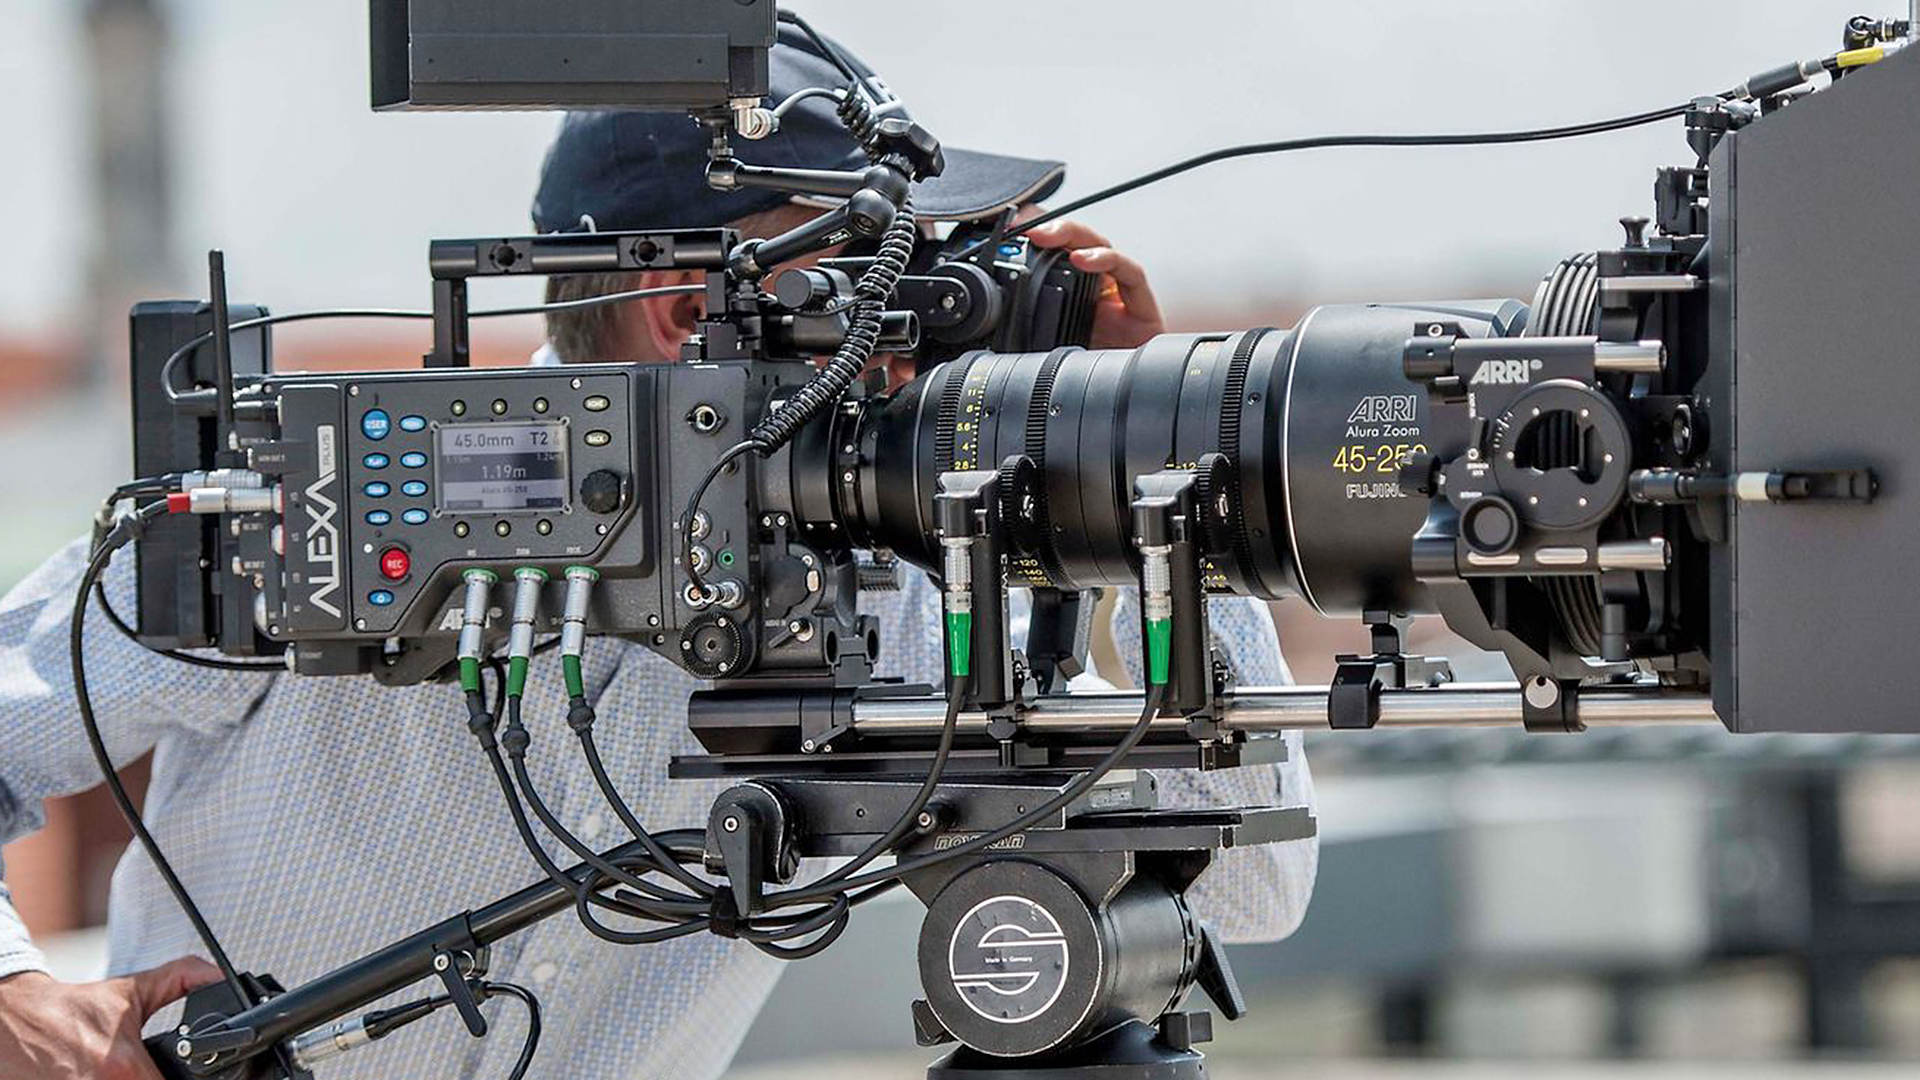 The ArriAlexa celebrates its 10thanniversary this year. Image: Arri.